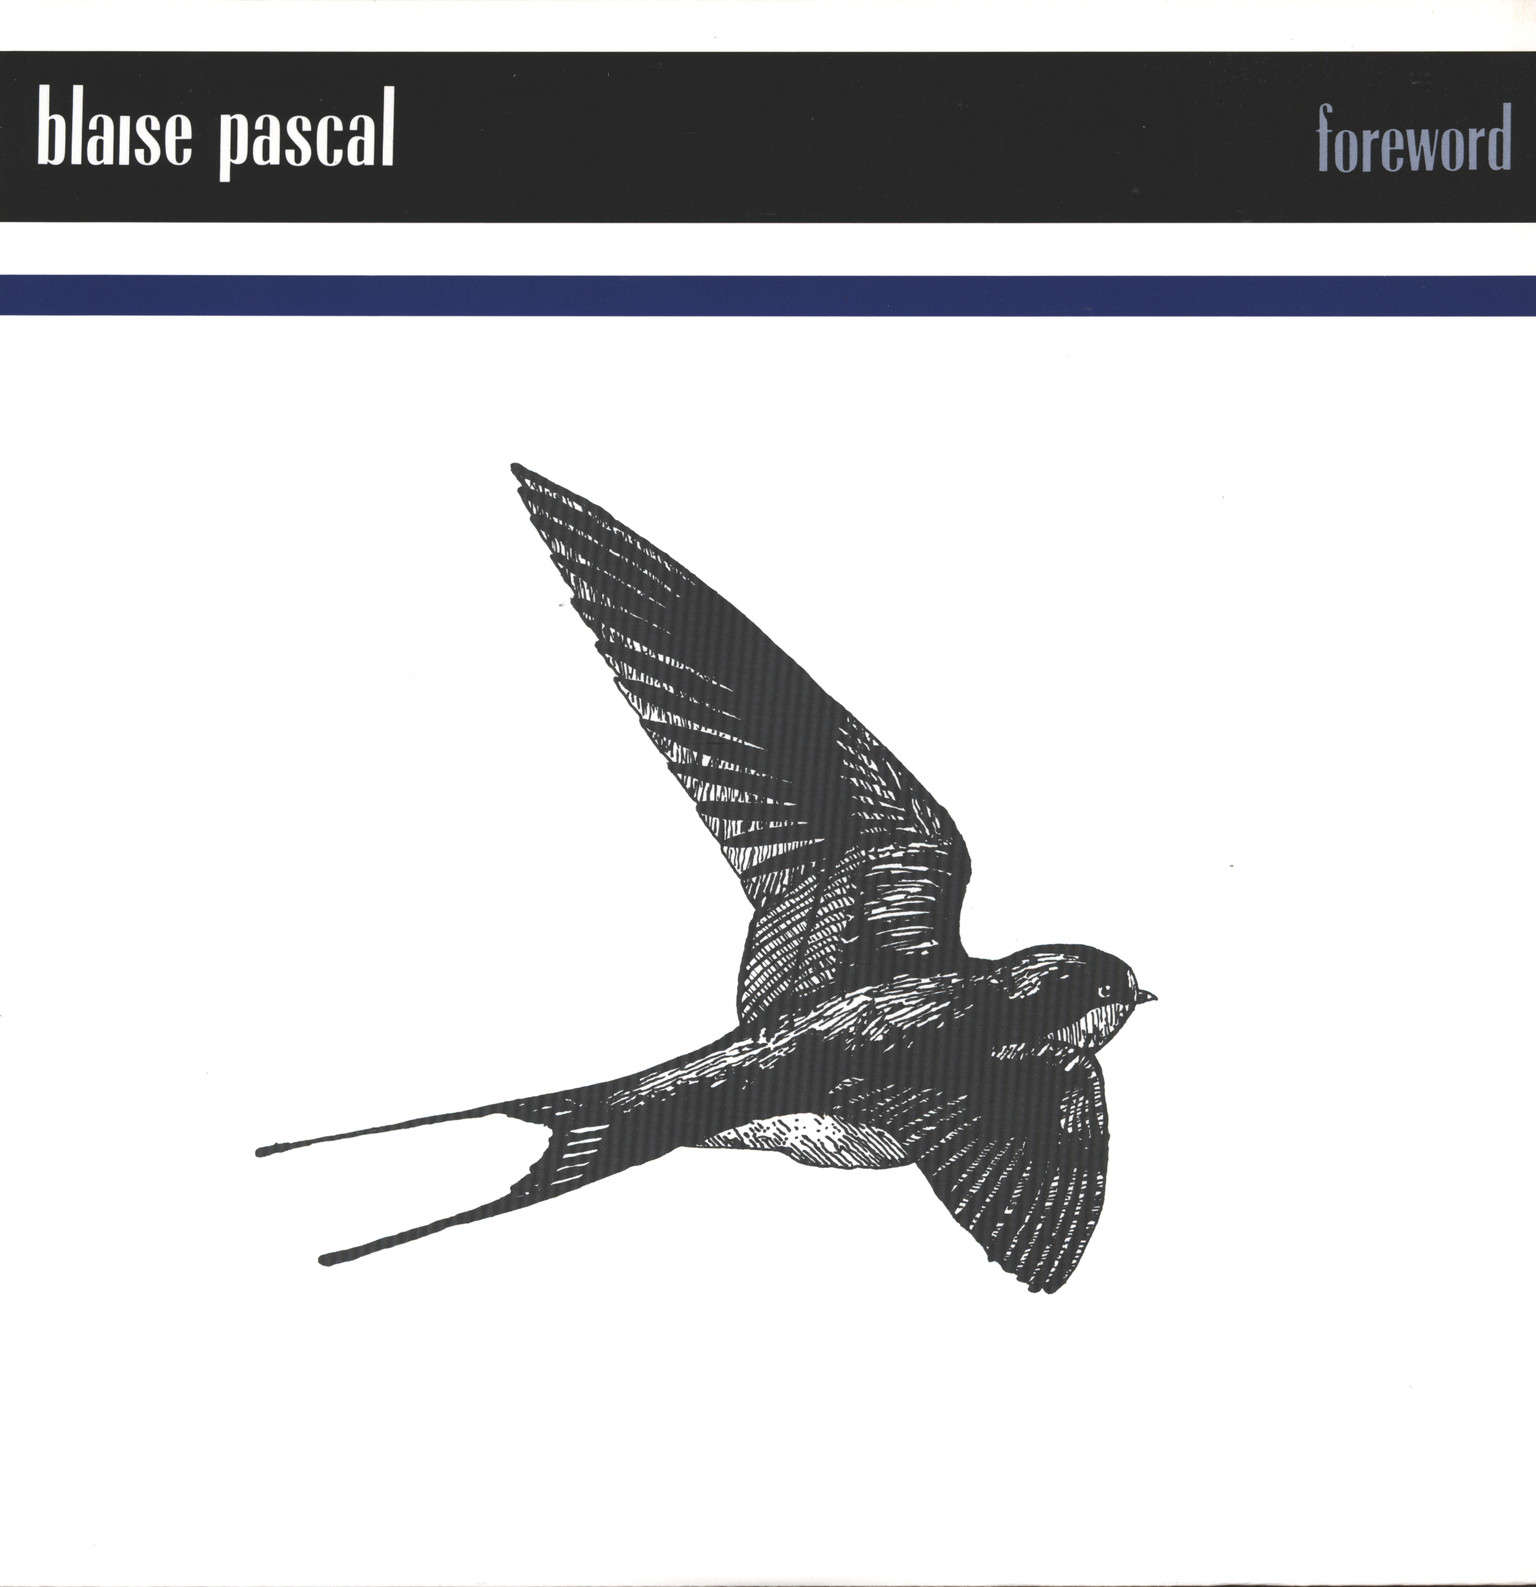 "Blaise Pascal: Foreword, 12"" Maxi Single (Vinyl)"